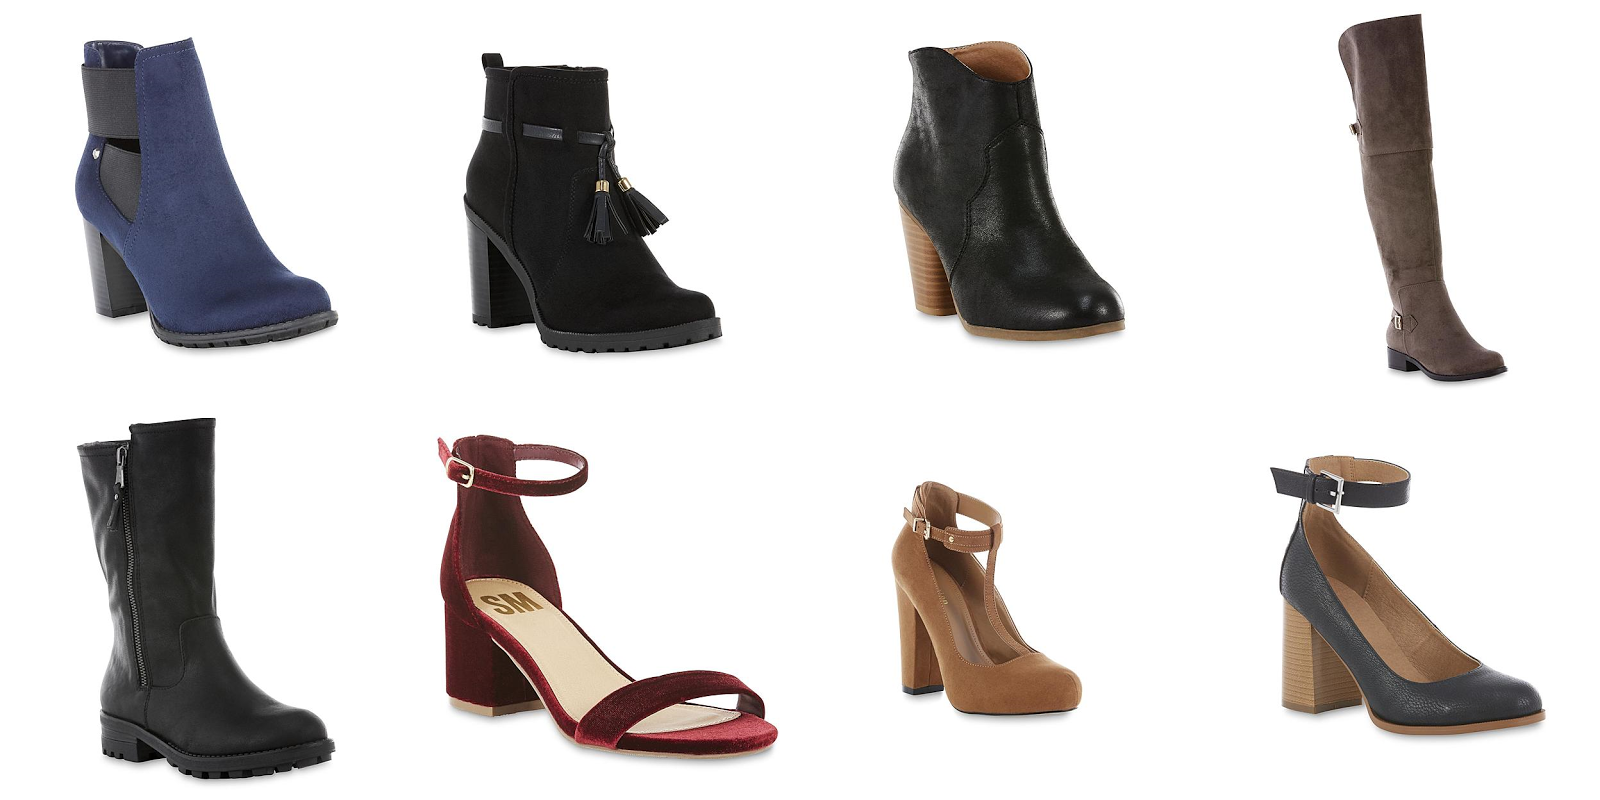 009c42a4500 Kmart have these Women s boots   heels are on clearance for  7.49